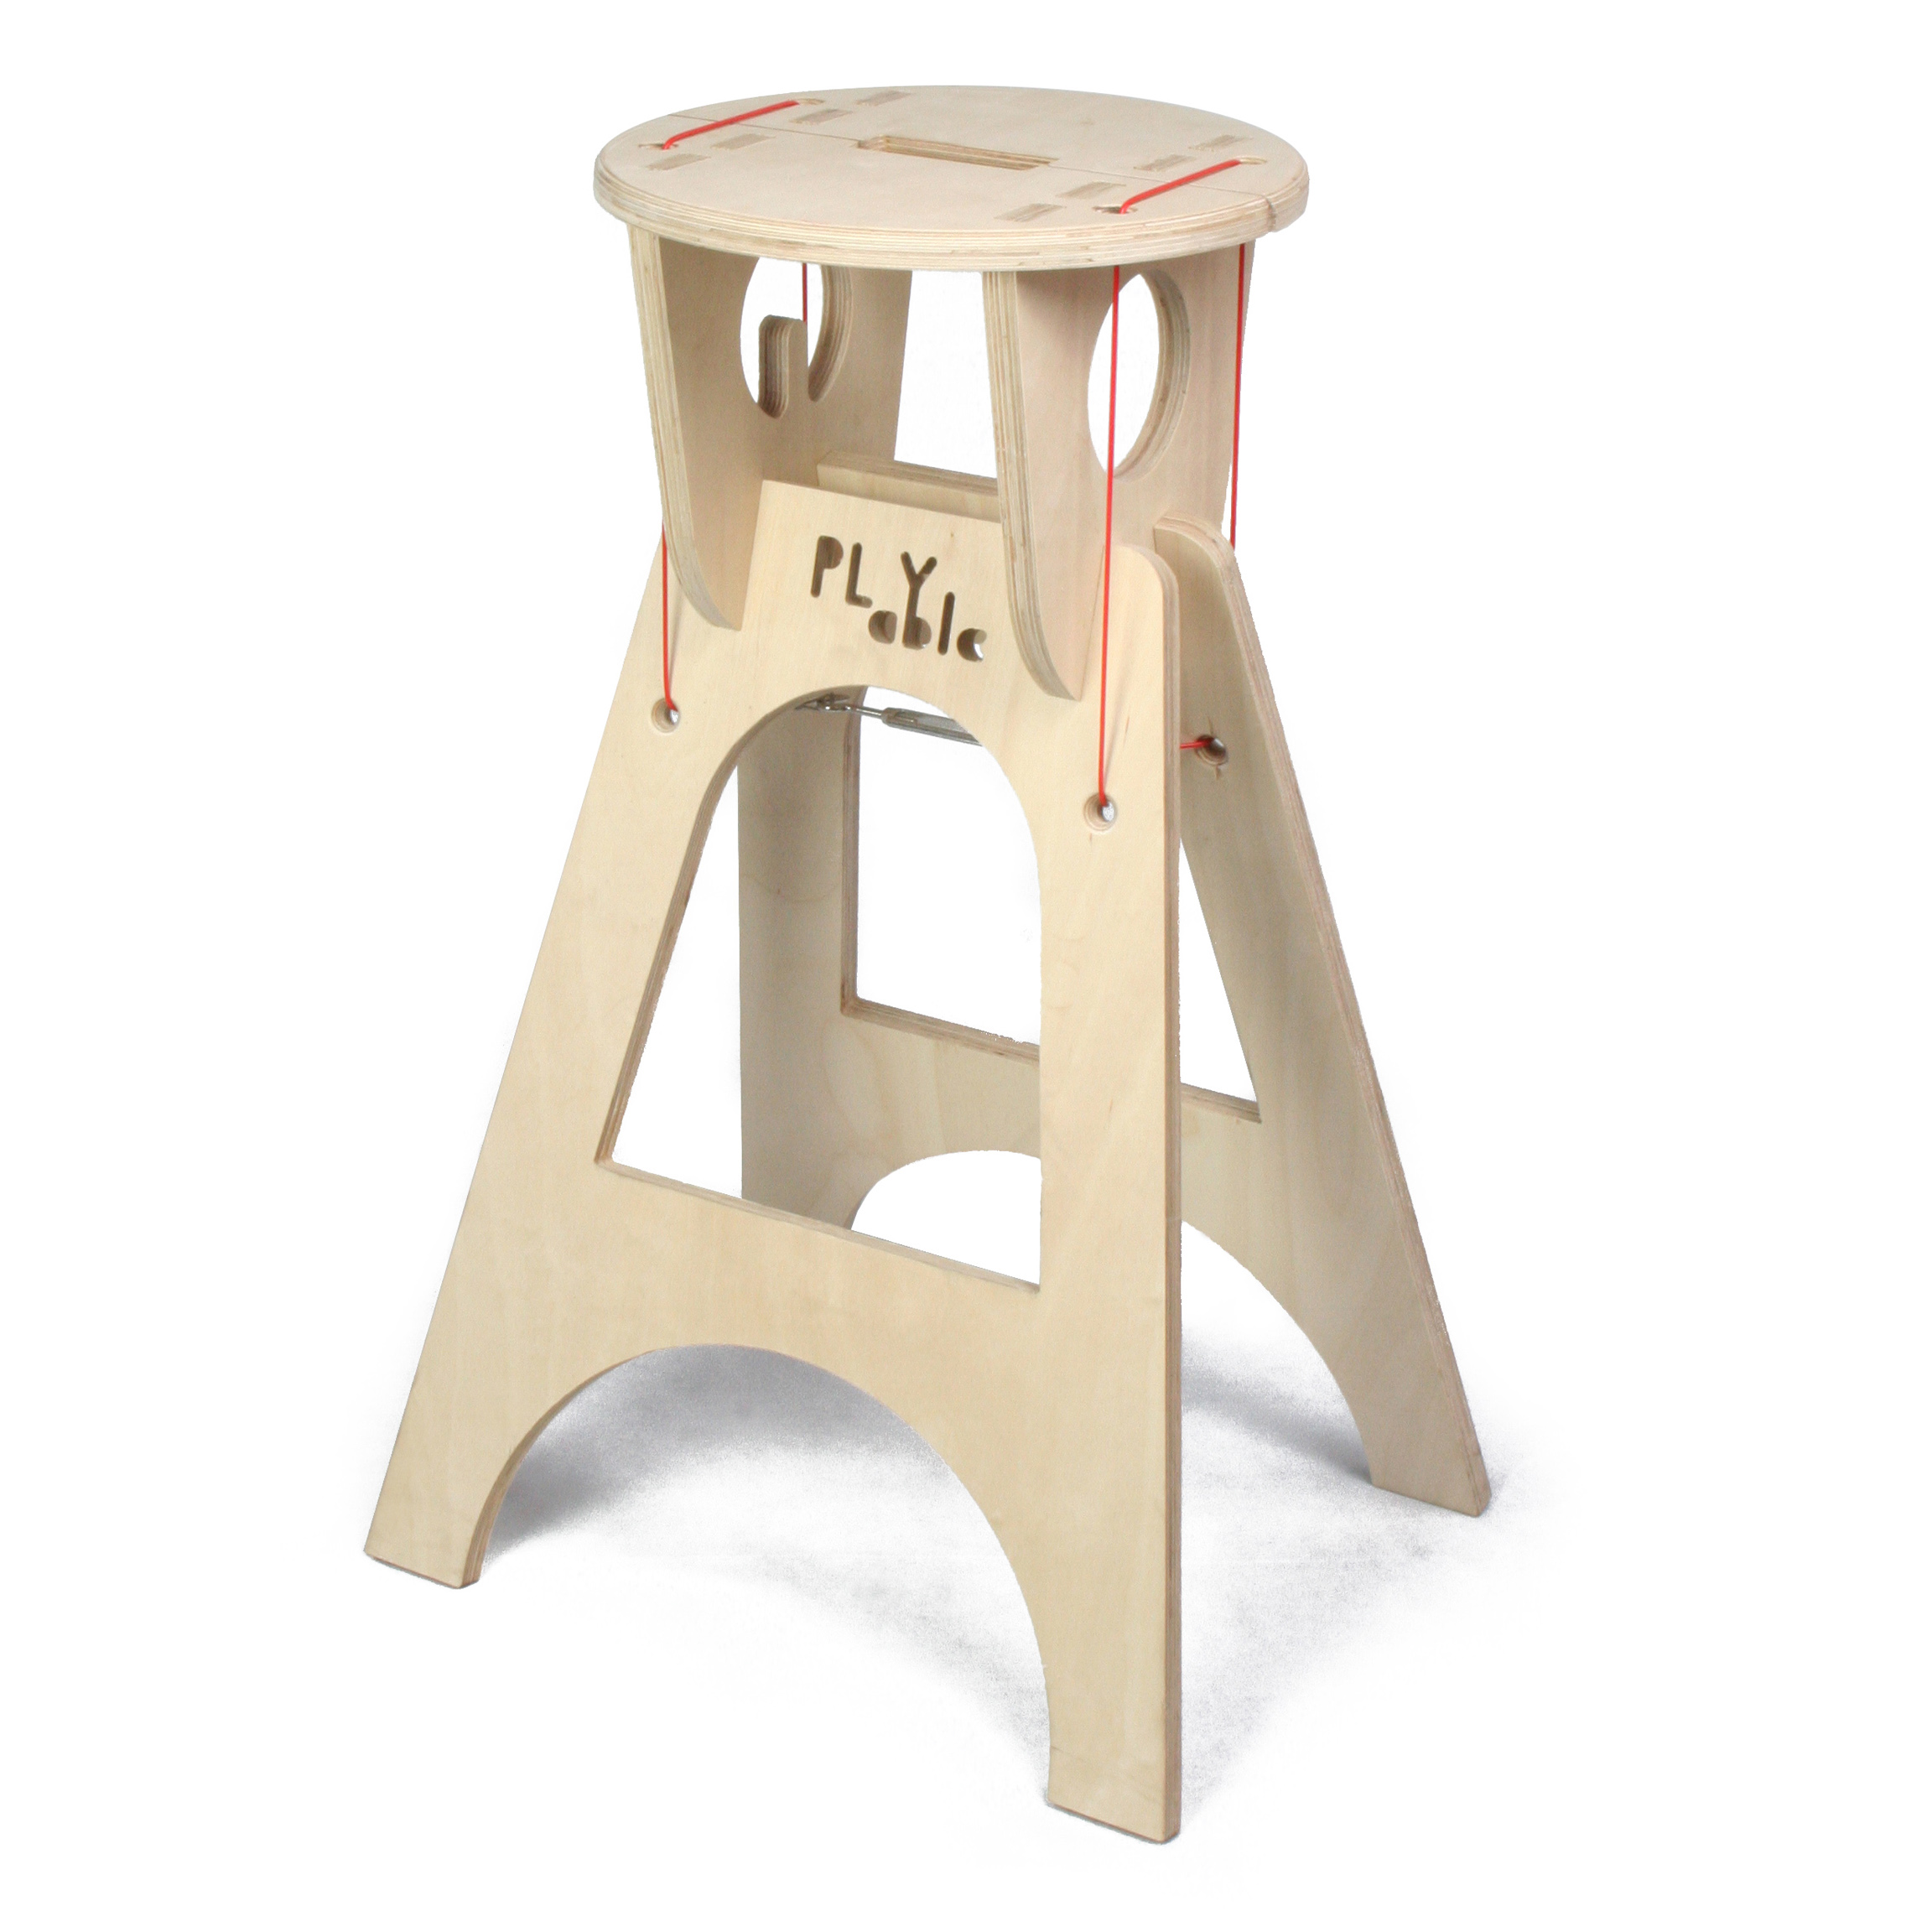 Awe Inspiring 8 X 4 X 6 Stool Caraccident5 Cool Chair Designs And Ideas Caraccident5Info